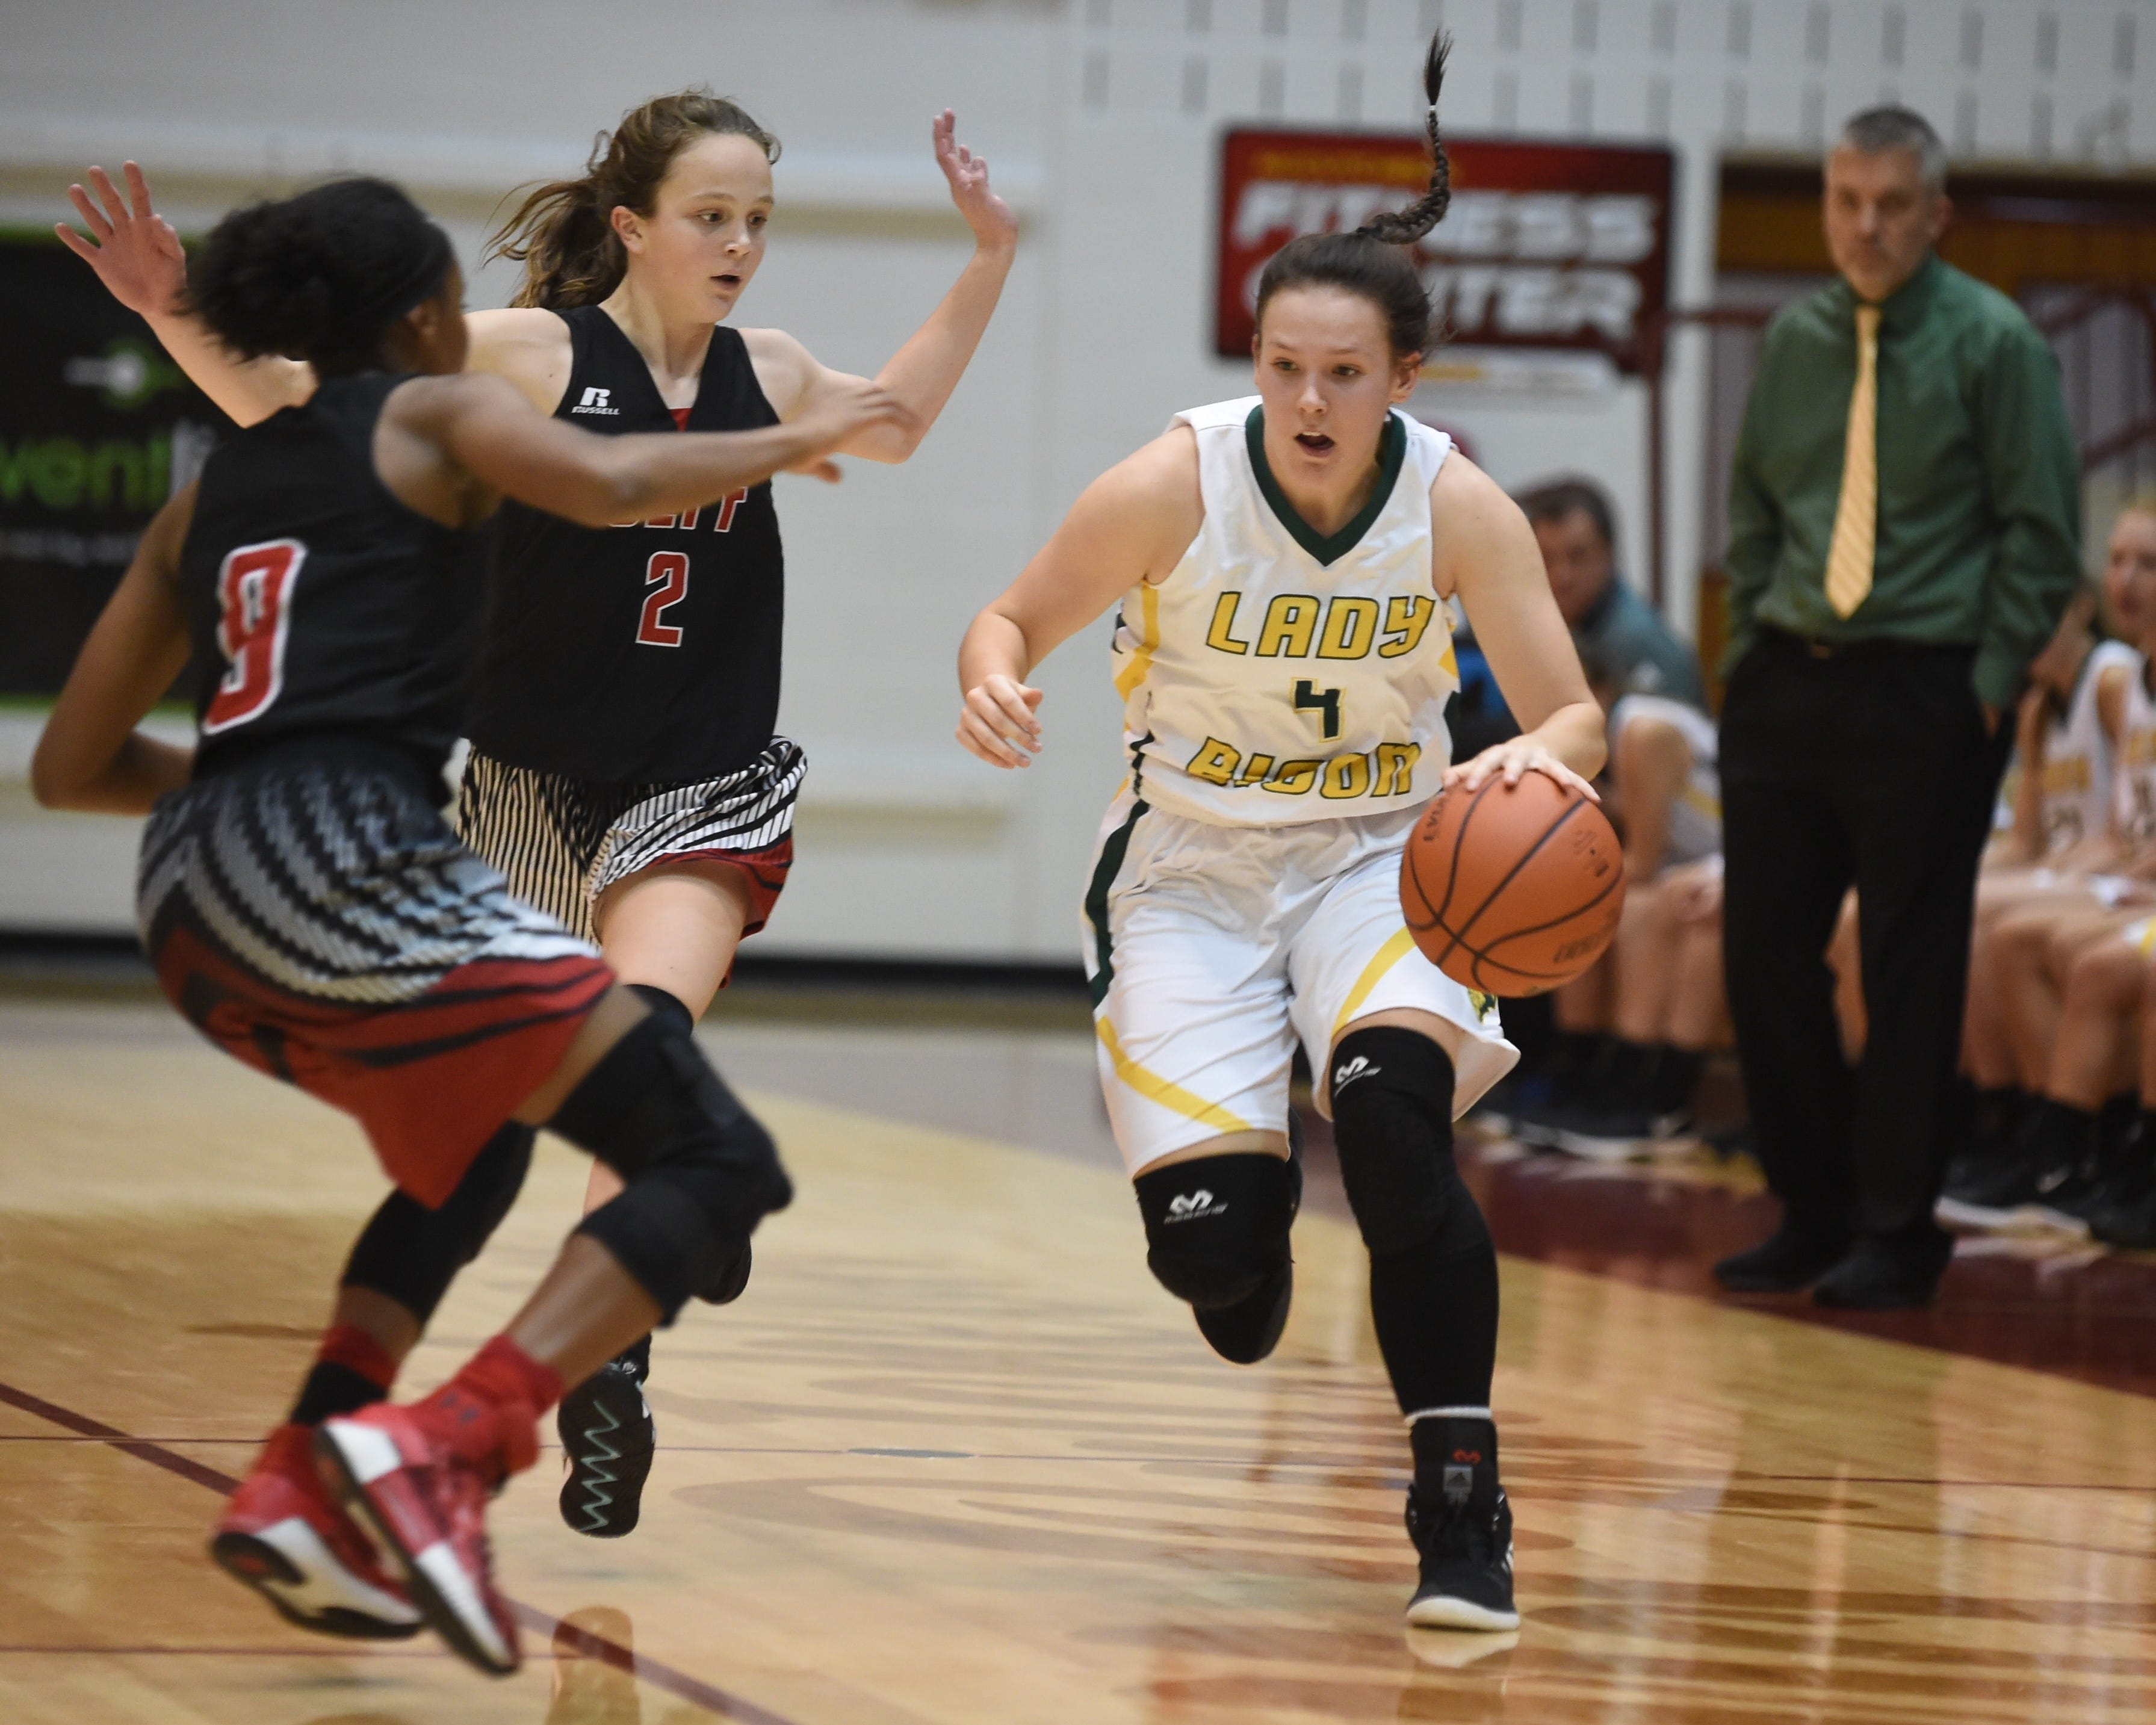 Junior Keely Meadows is one of the puzzle pieces that makes Benton Central's system work.